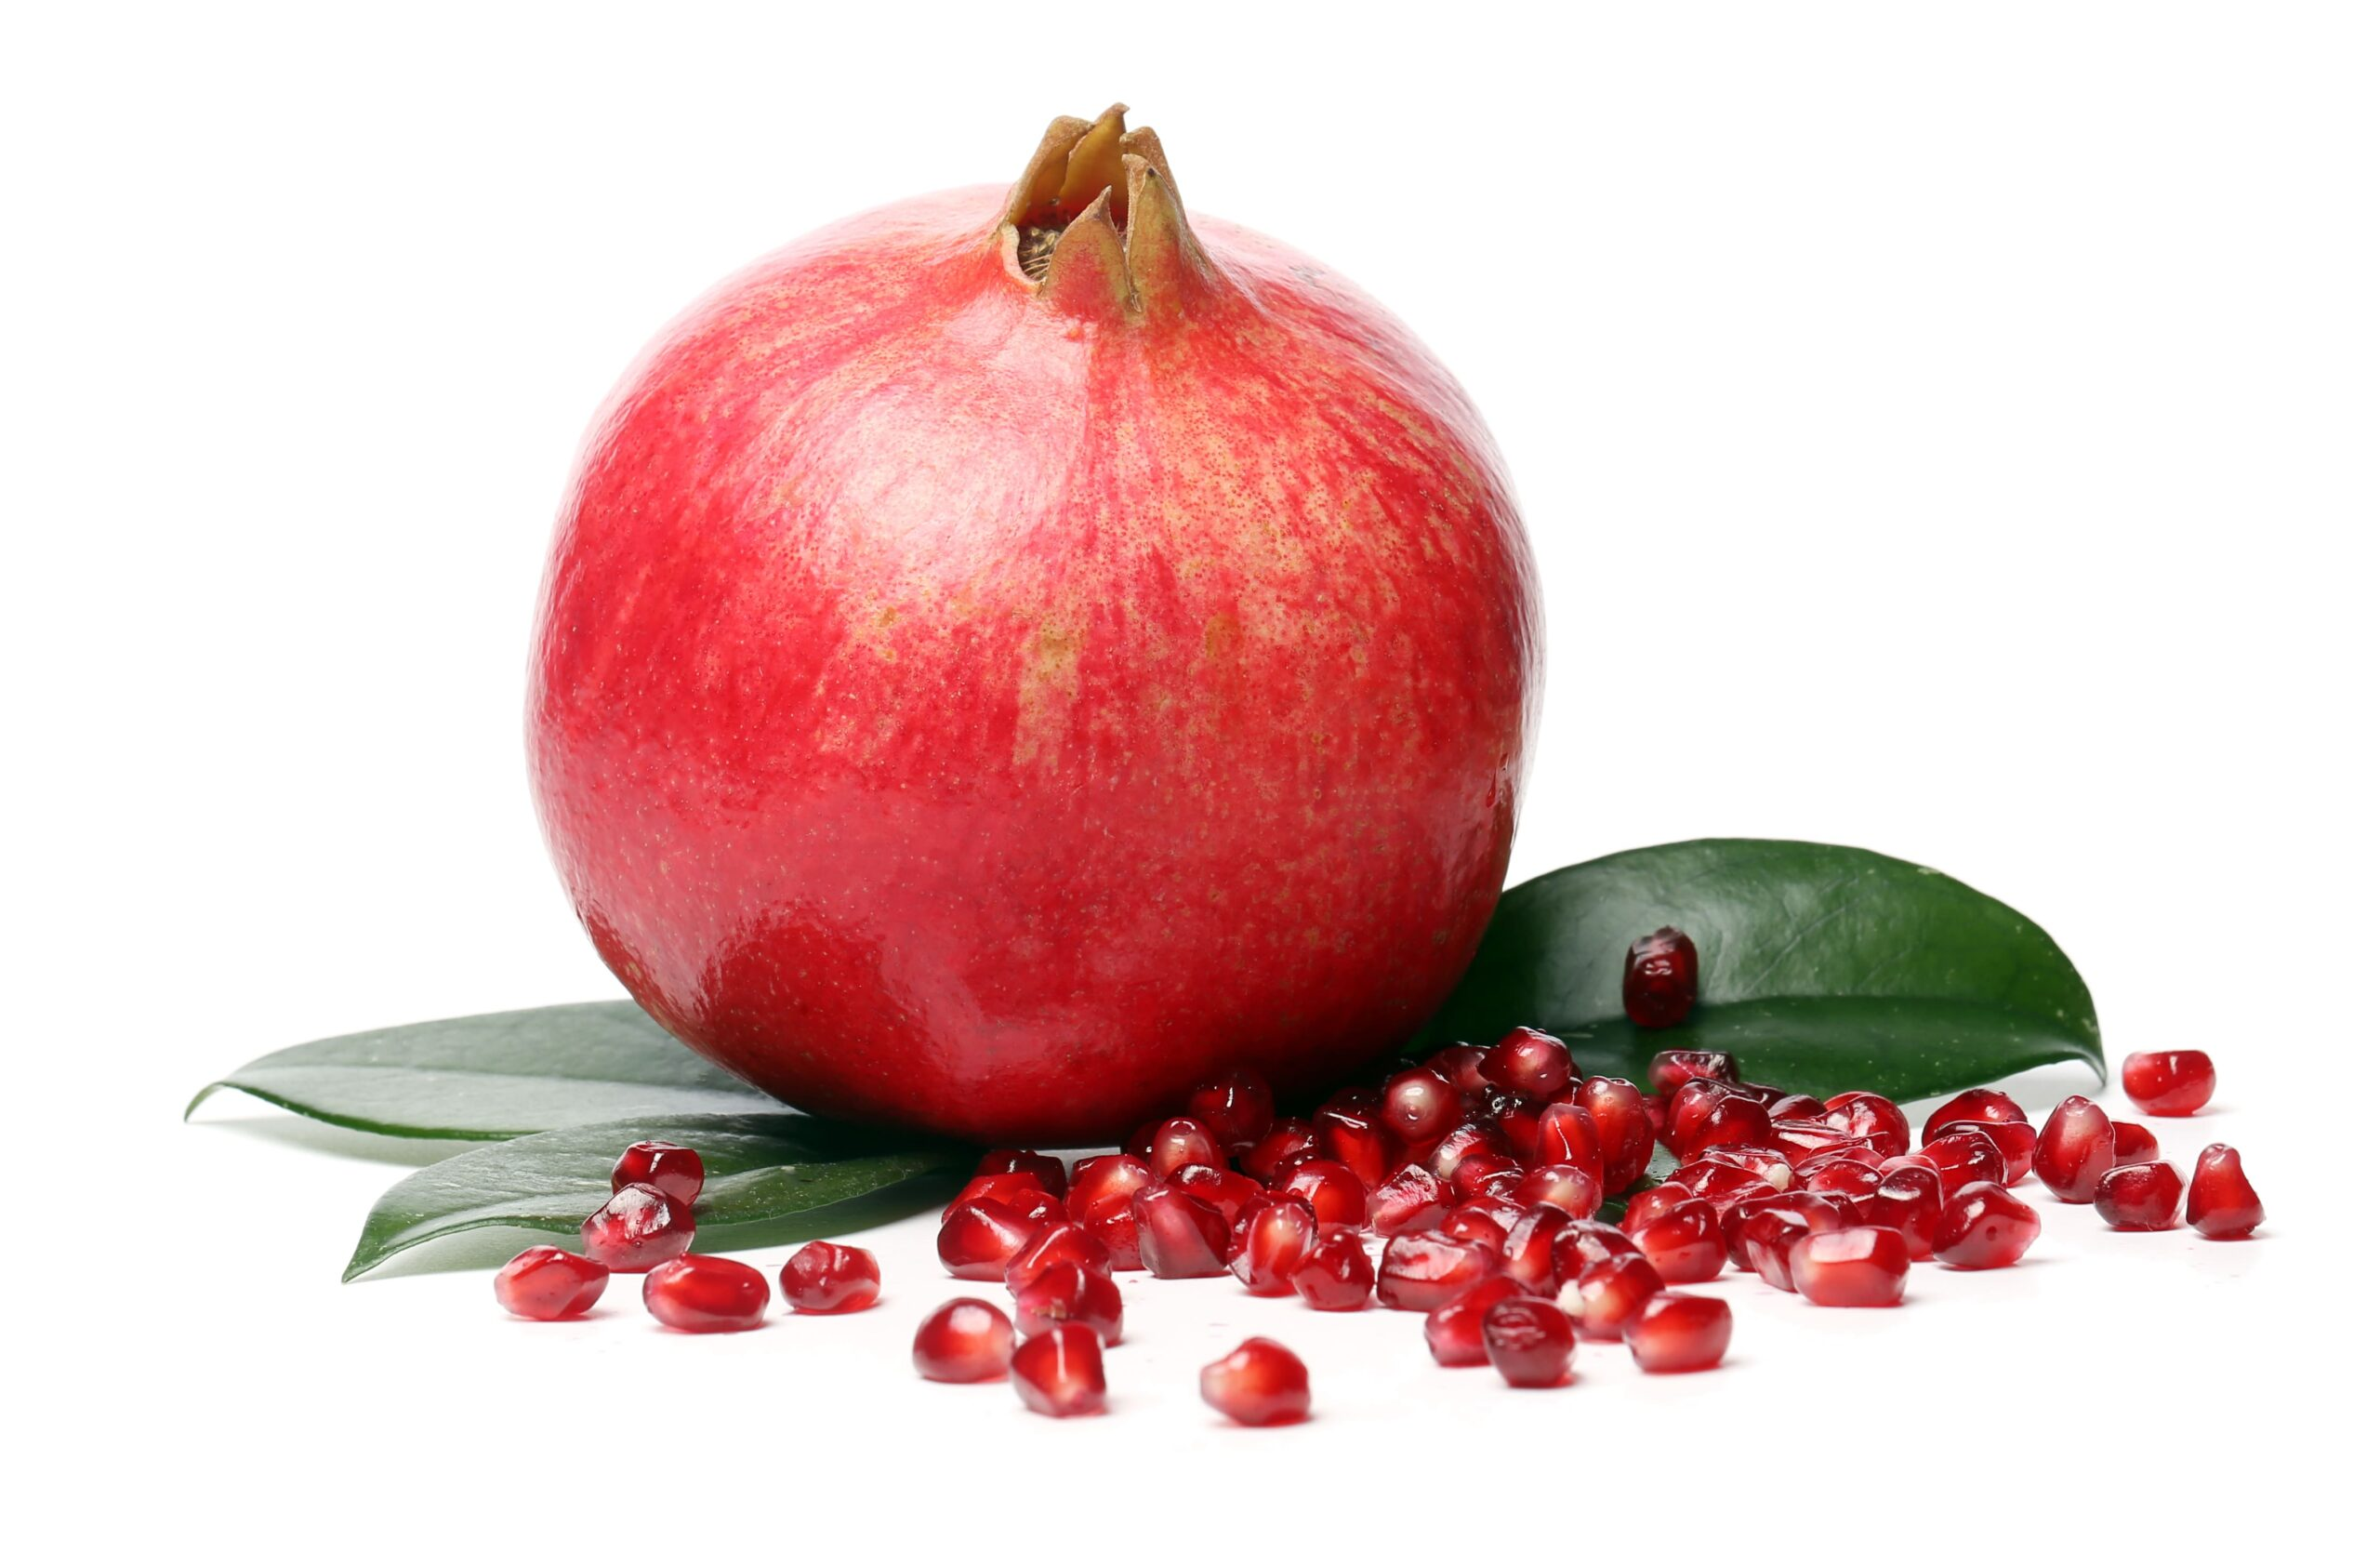 exotic and delicious pomegranate on white background 1 scaled